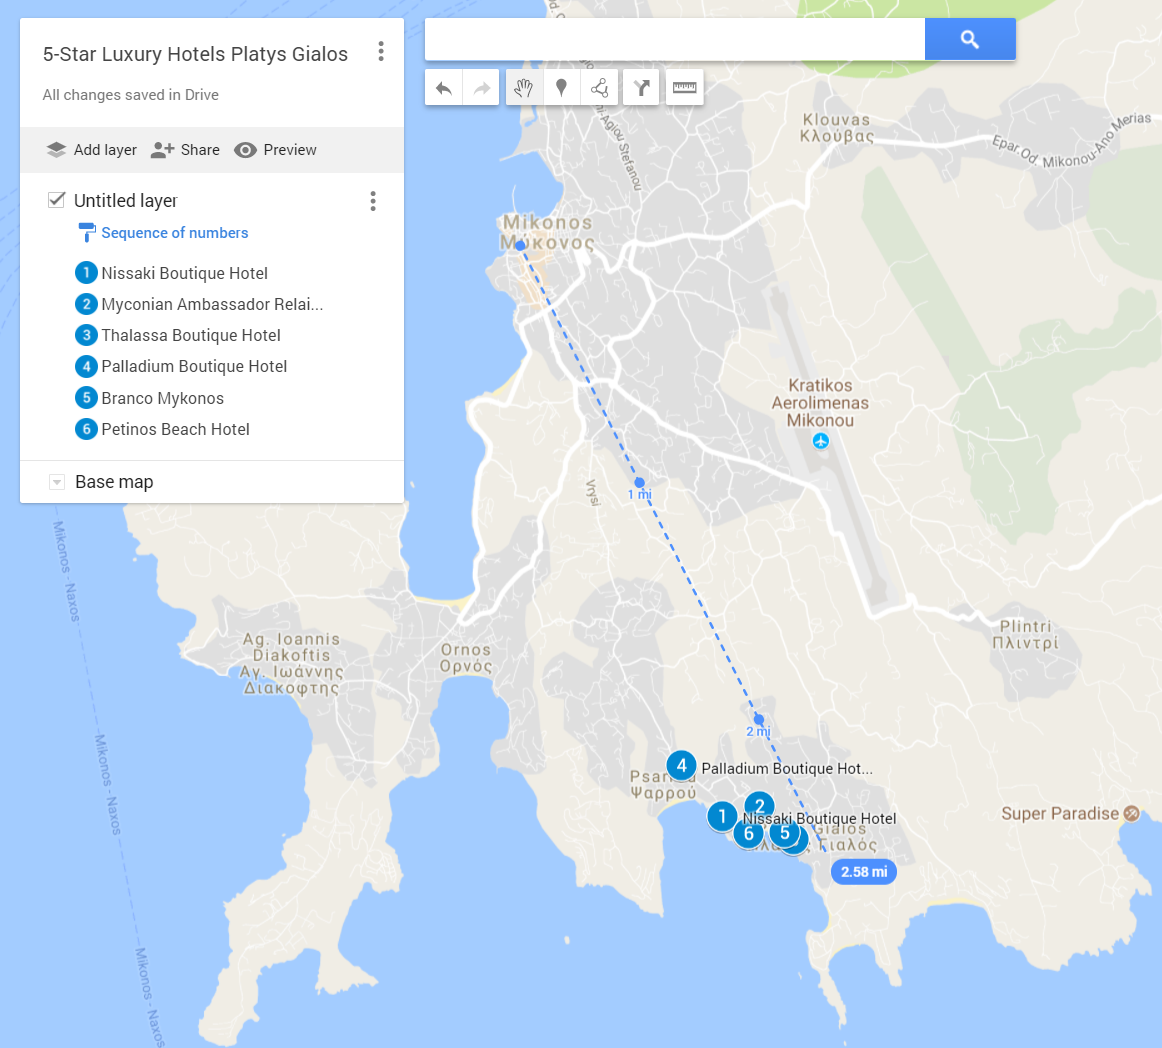 A google map with all the locations of the 5-star luxury hotels in Platis Gialos